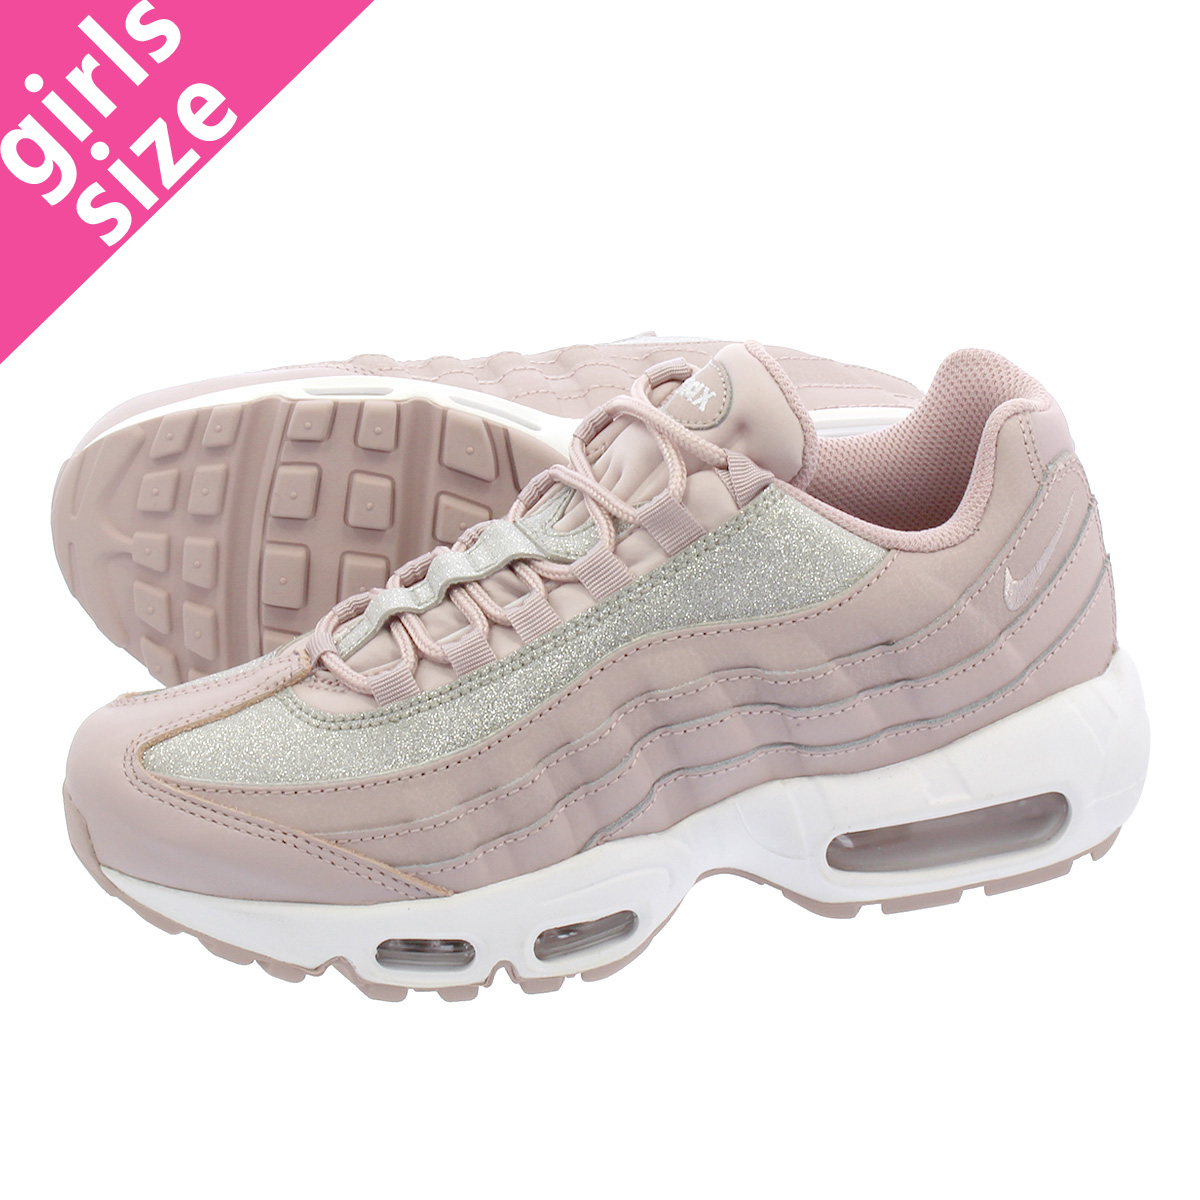 8fb15814ff4 LOWTEX PLUS  NIKE WMNS AIR MAX 95 SE Nike women Air Max 95 SE PARTICLE  ROSE PURE PLATINUM WHITE at0068-600